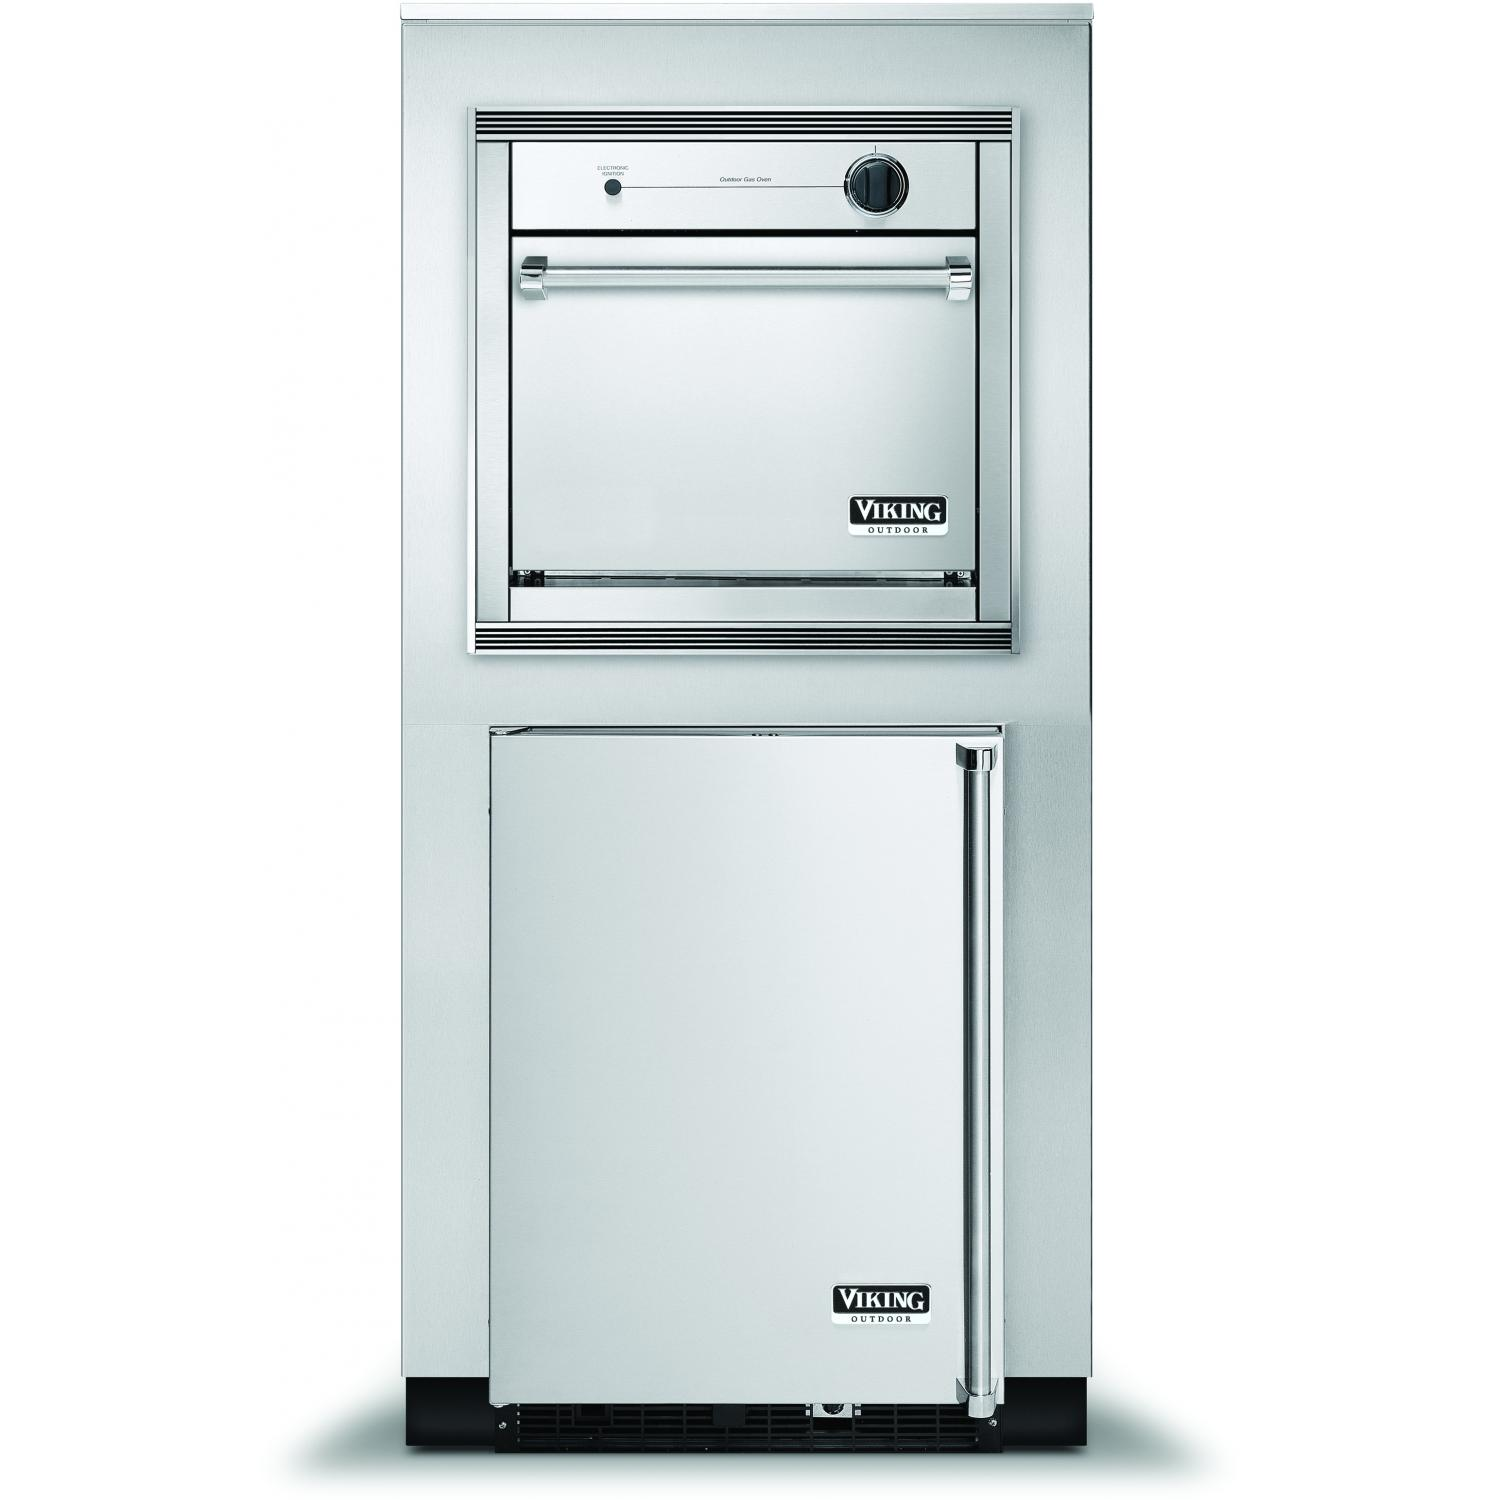 Viking VGSO260TLSS 26-Inch Propane Outdoor Oven In Tower Cabinet With Beverage Center - Left Hinge